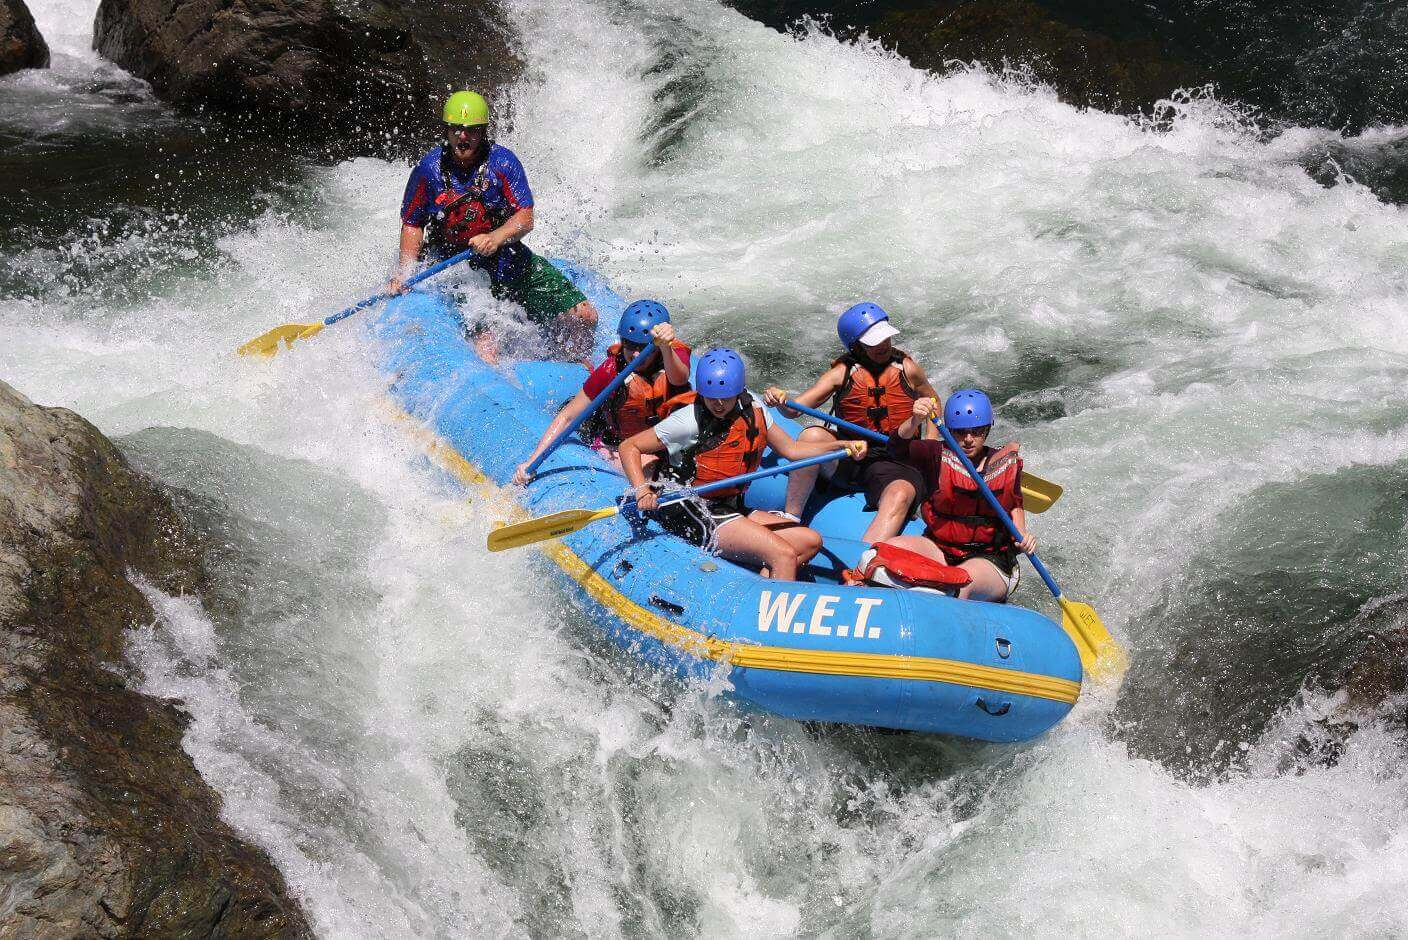 Testing their skills on Parallel Parking on the Middle Fork of the American River